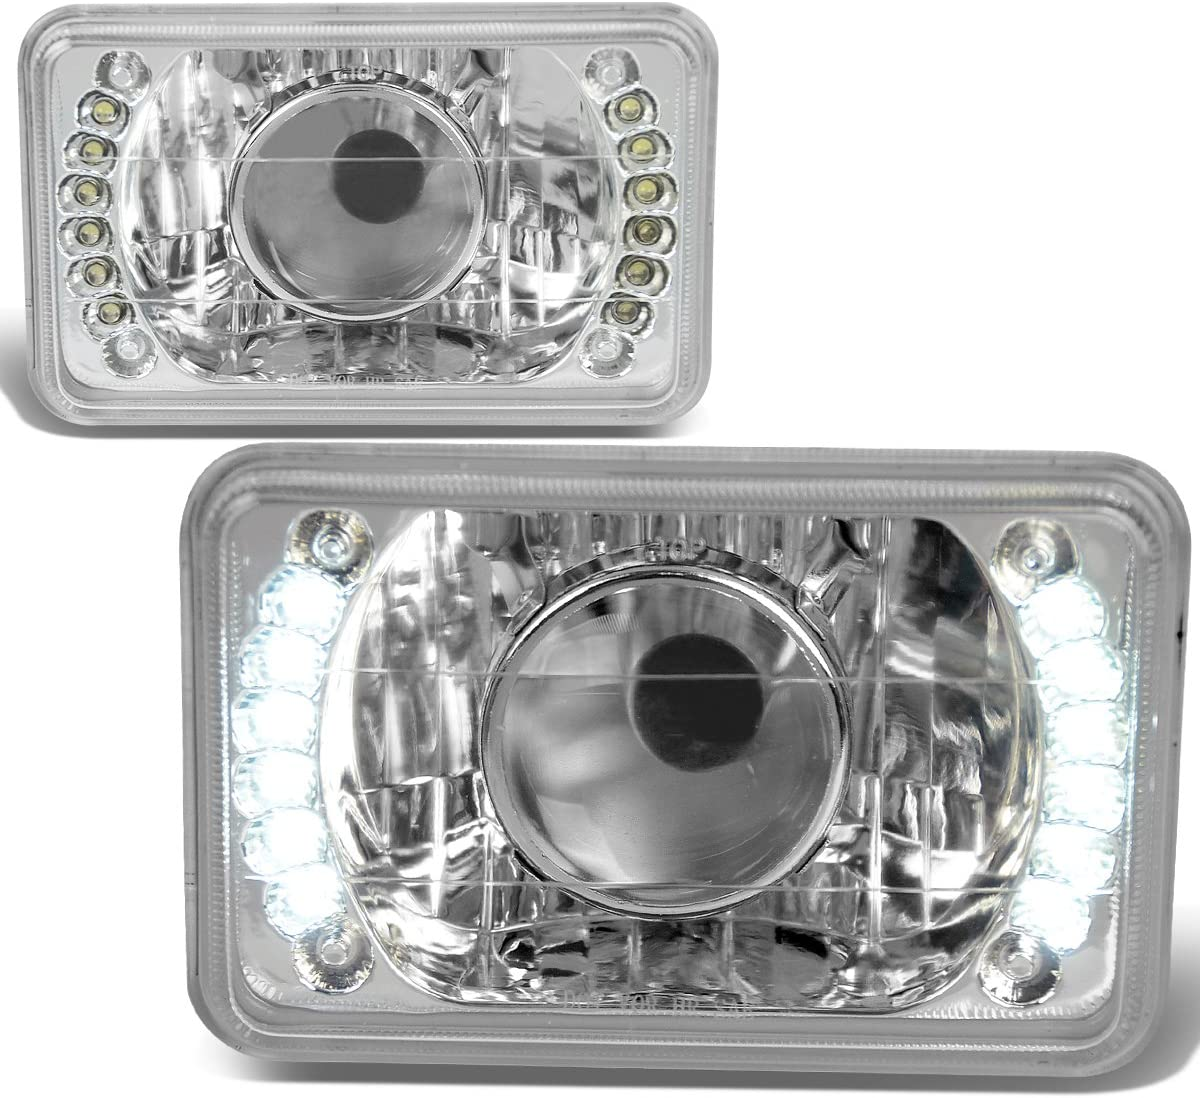 2Pcs 4X6 Inch Glass Lens Bult-In 新色追加して再販 Chrome Housing He LED 売店 Projector